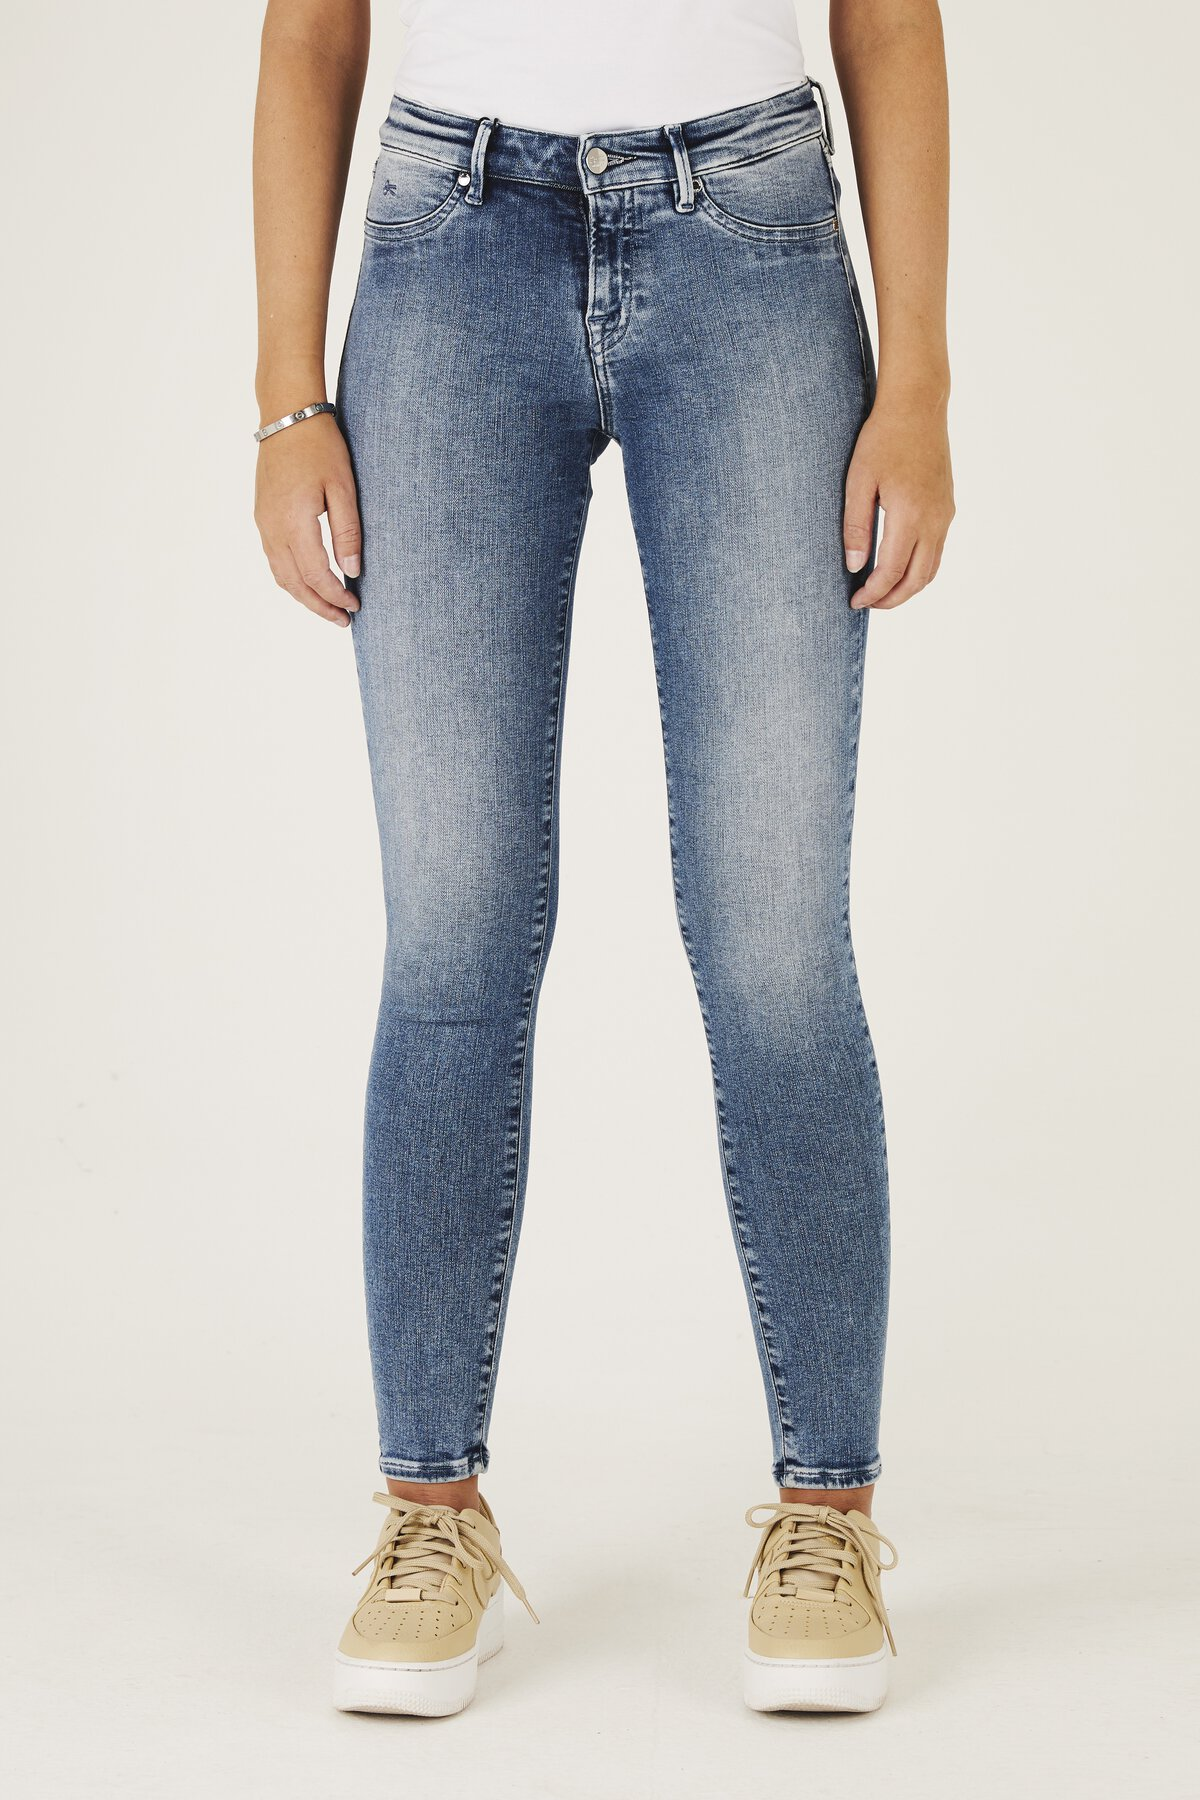 Spray - Super Tight Fit Jeans - Front